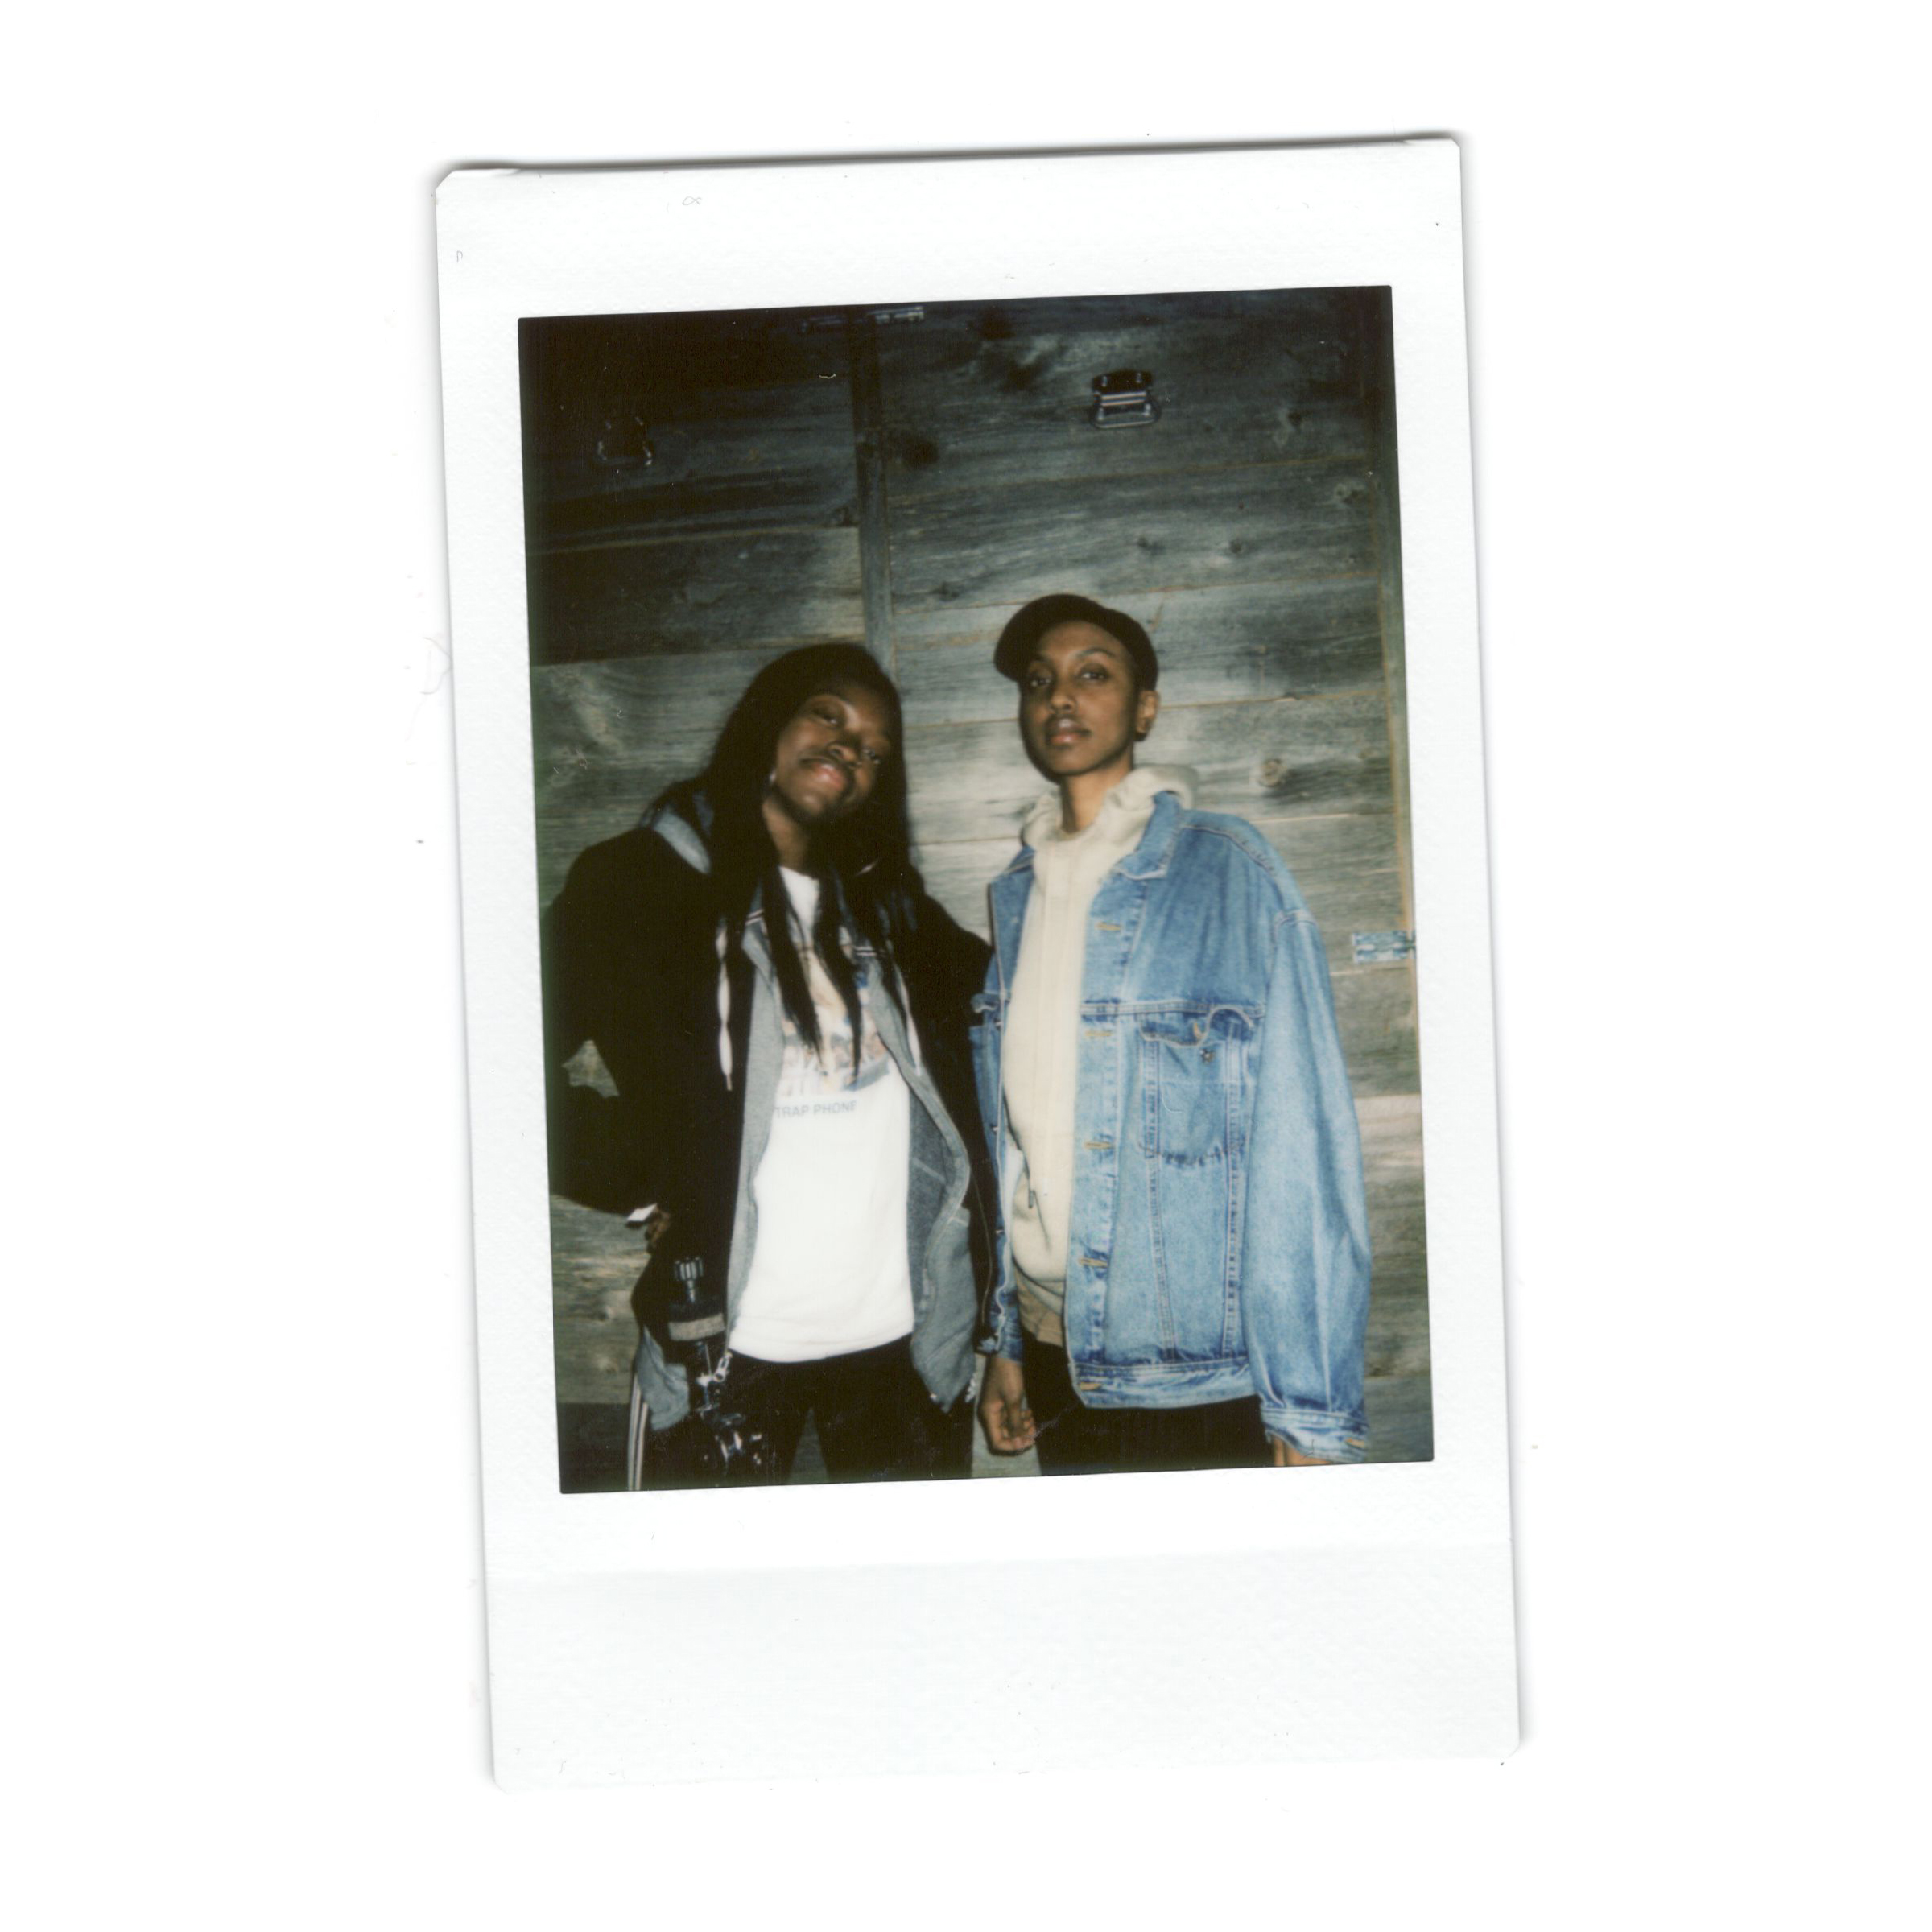 FFSO-Polaroid-BizZarh2.jpg